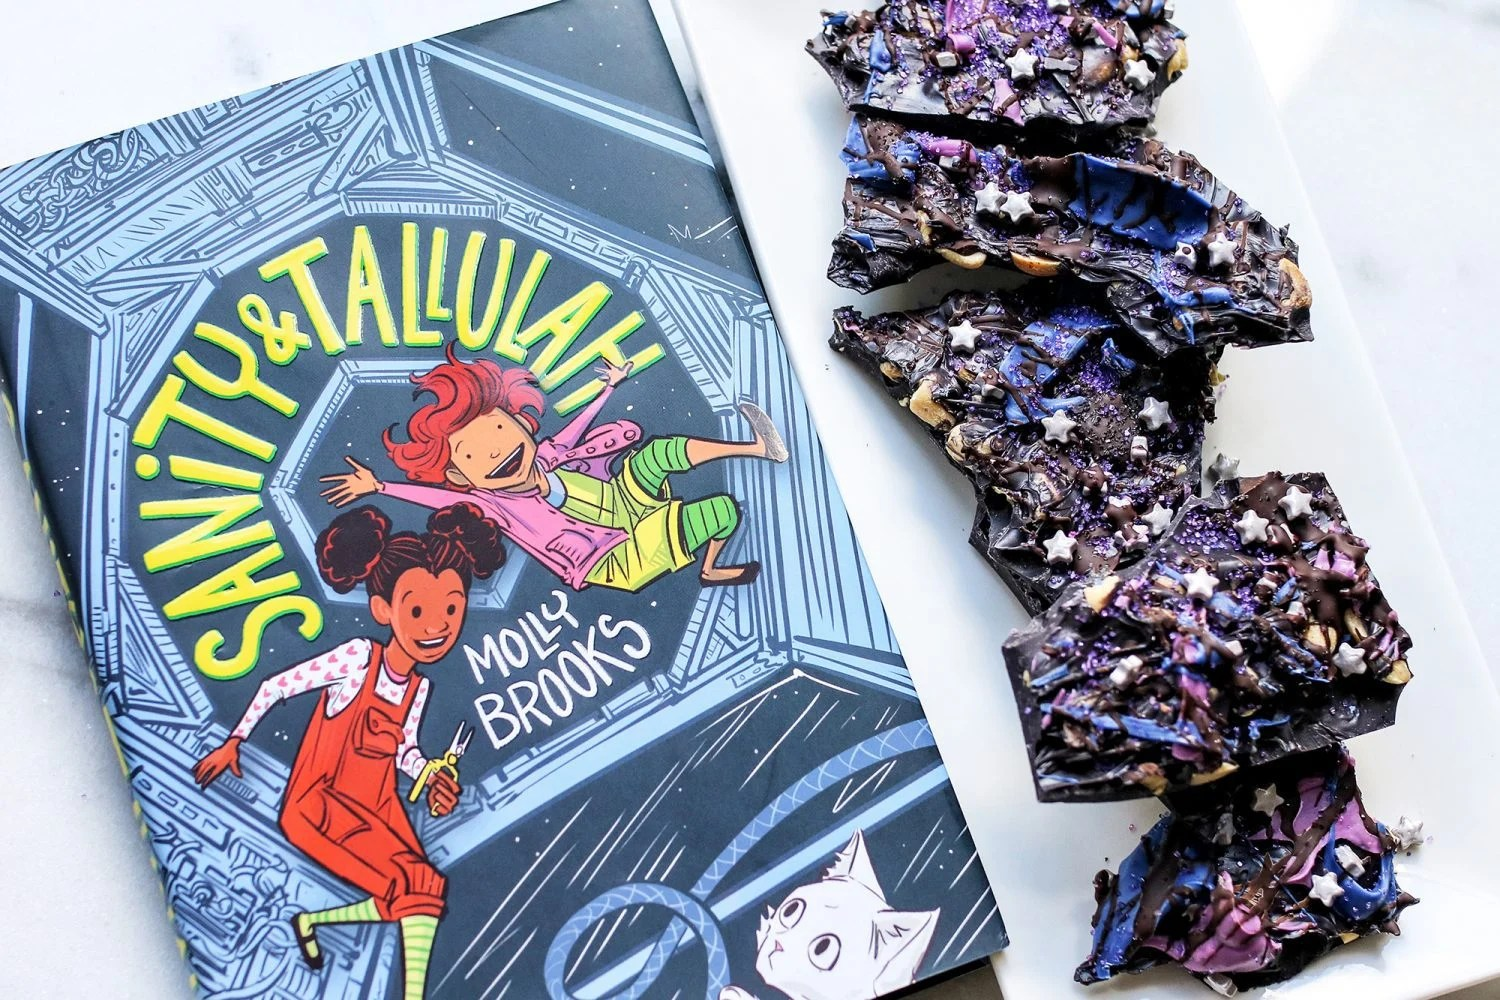 space bark, space-inspired recipe, sanity & tallulah, reading, disney books, science, STEM, recipe, recipes, kid foods, mom blog, family friendly snacks, recipe, food blog, food bloggers, mommy blog, mom blogger, family blog, family influencer, instagram, mother, father, tween blog, dad blog, travel family blog, United States, 2018, mom blog, top, best, mommy blogger, daddy blog, tween blogger, child brand influencer, the super mom life, dad blog, dad blogger